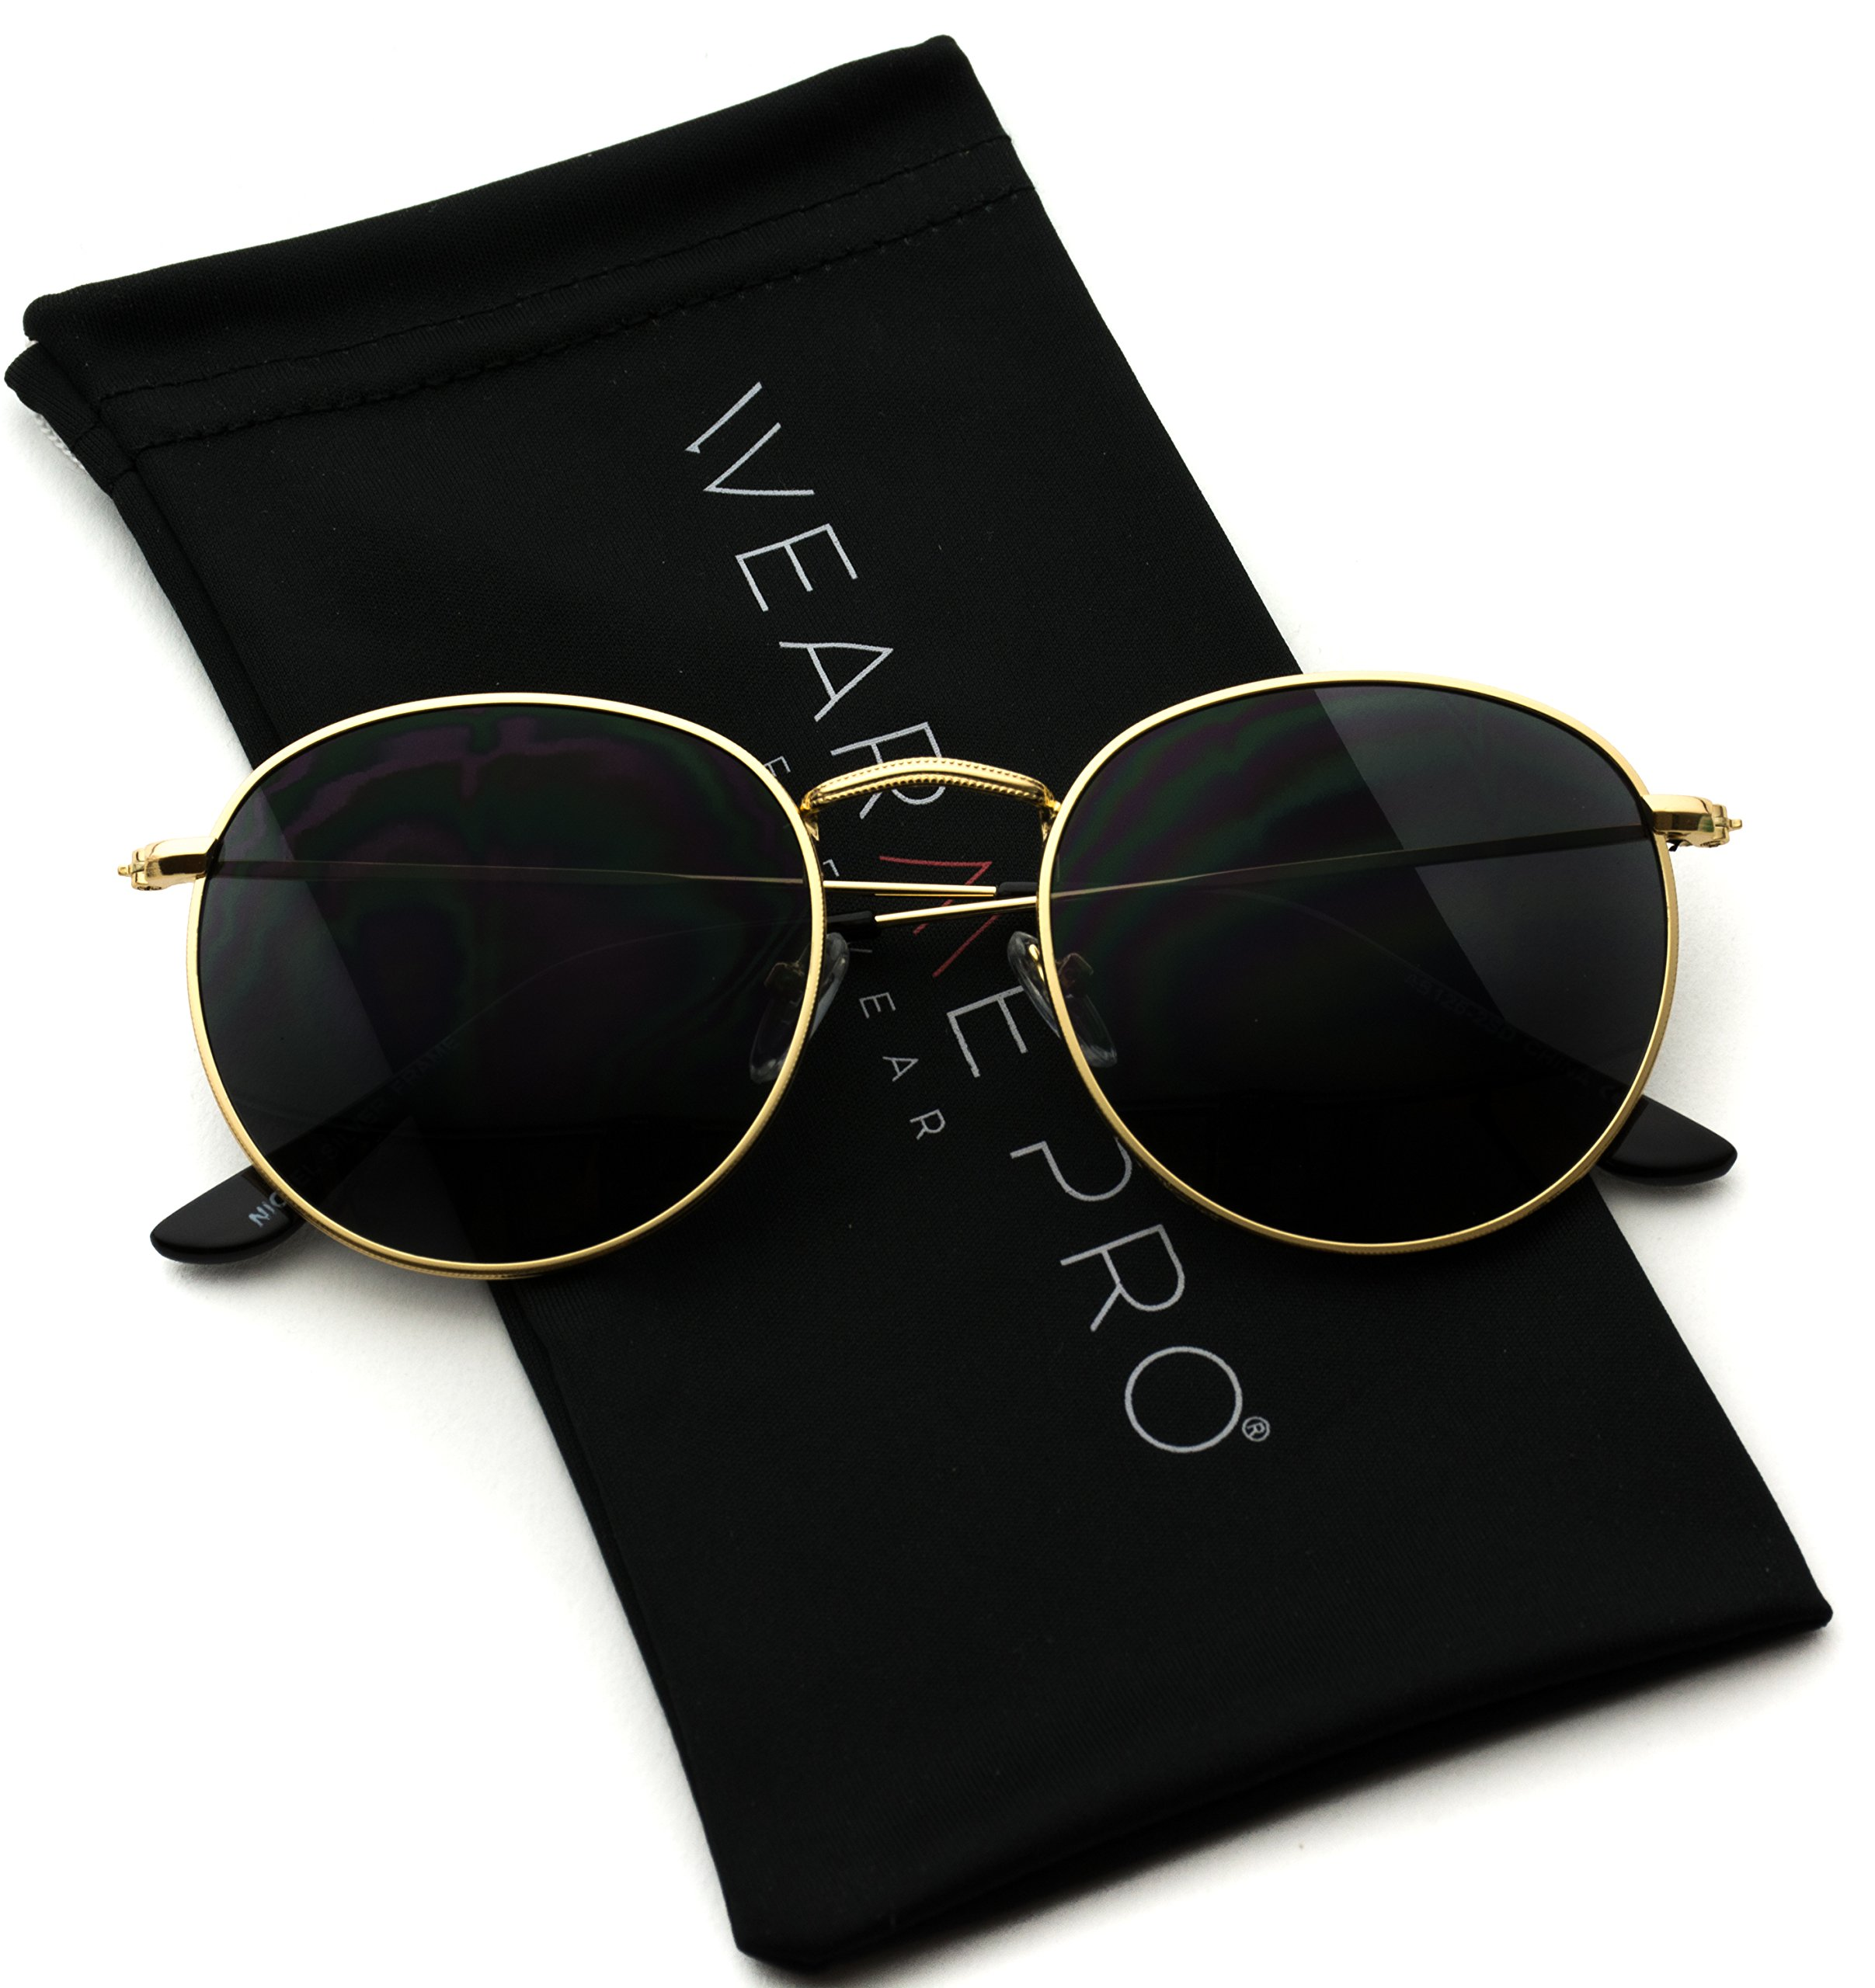 WearMe Pro - Reflective Lens Round Trendy Sunglasses (Gold Frame/Black Lens, 51)